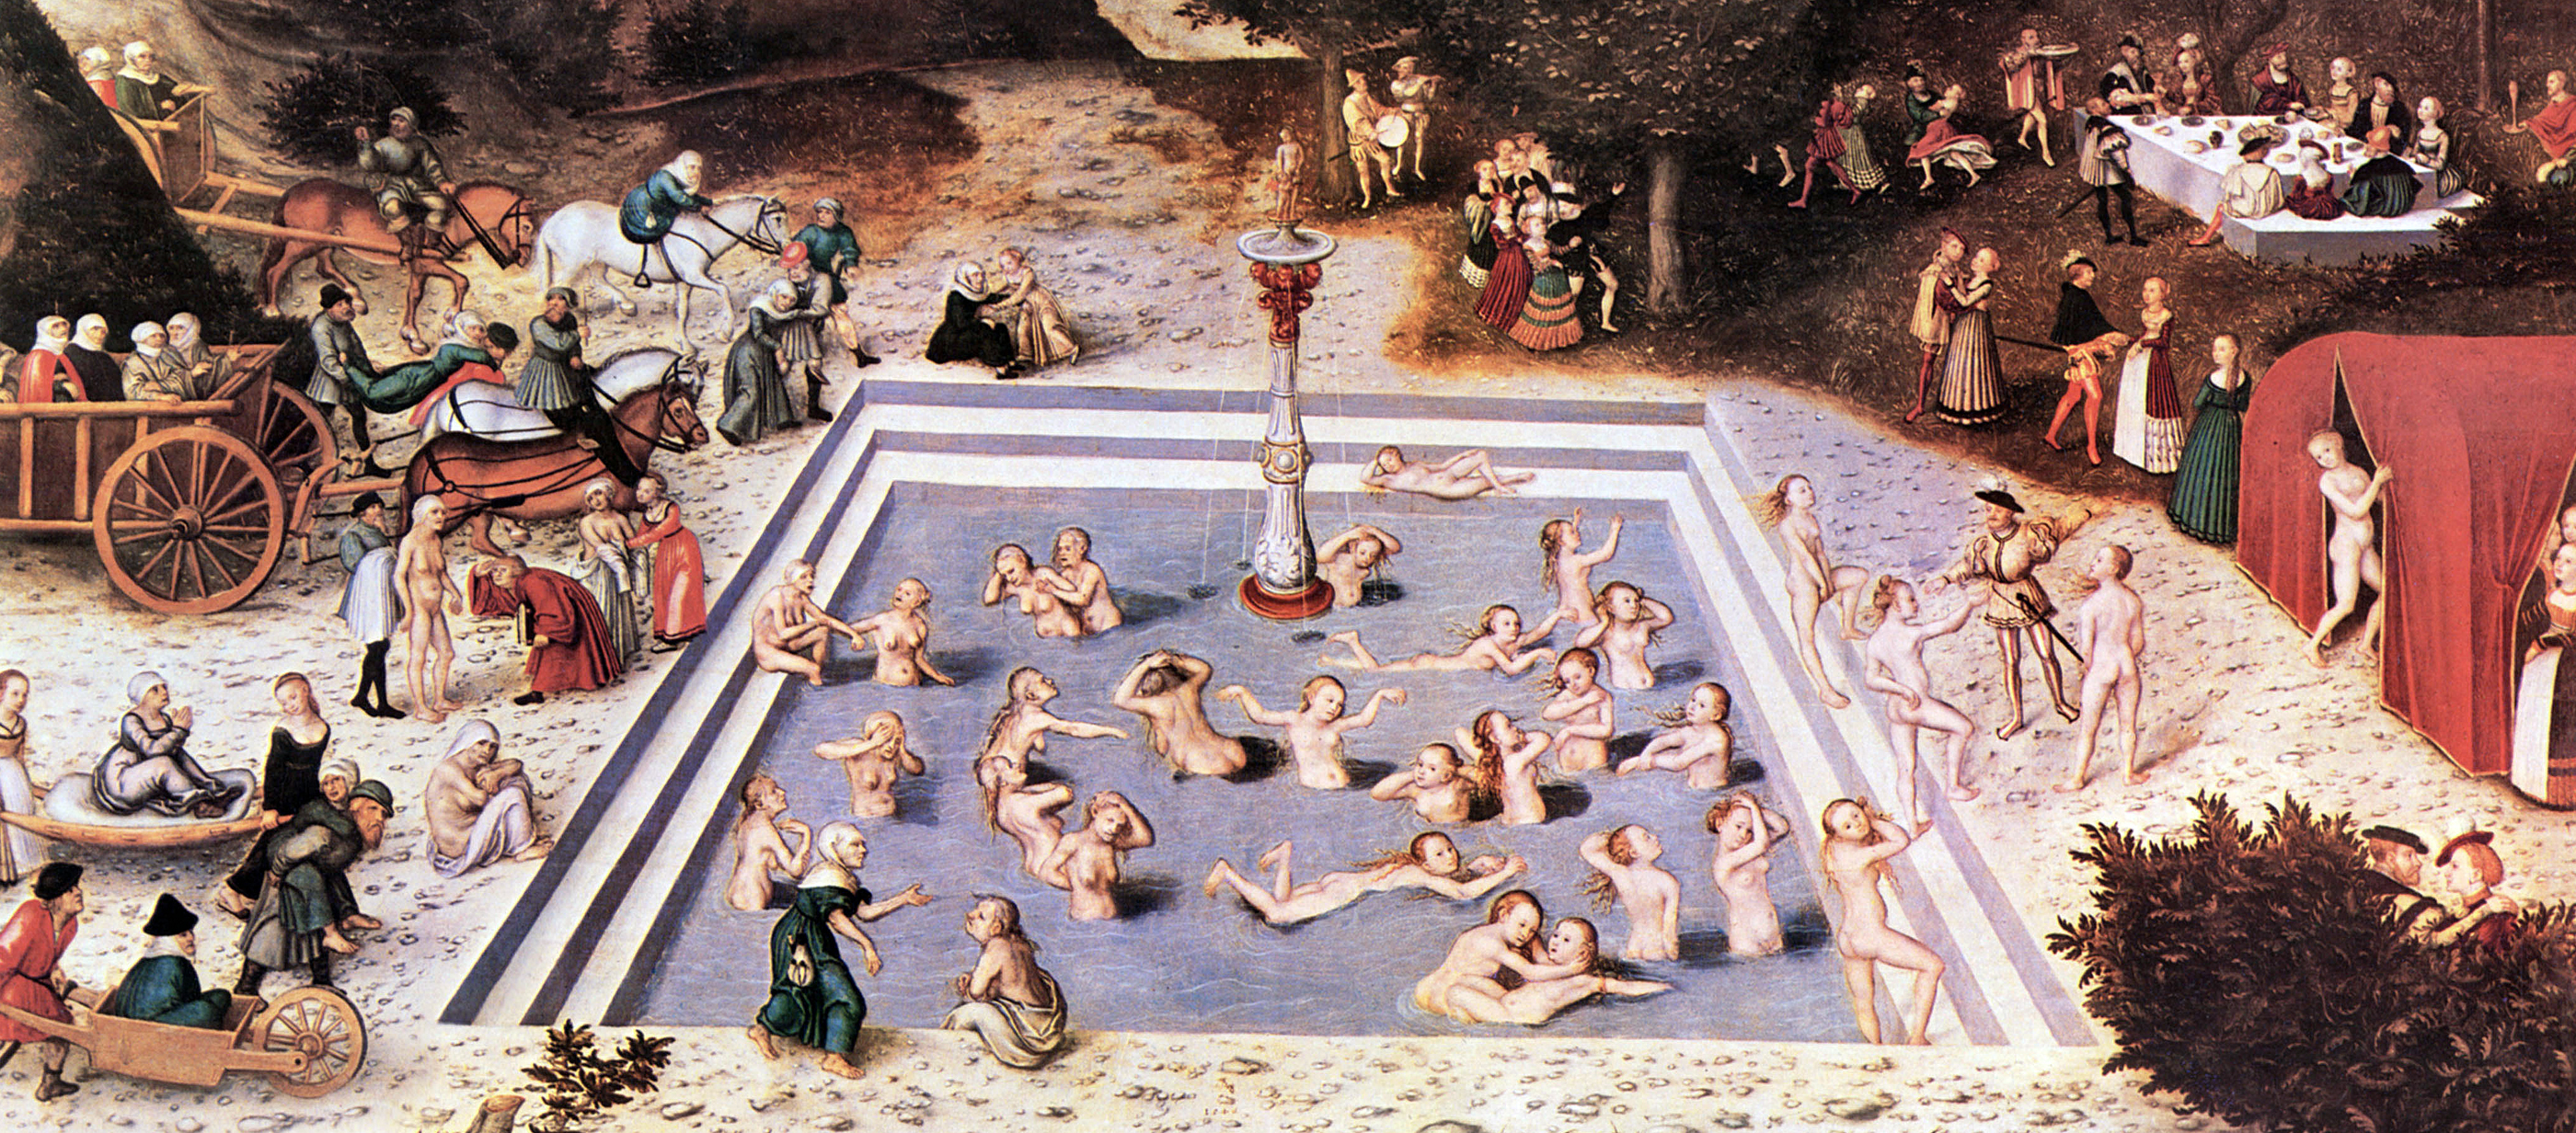 Lucas Cranach painting showing people frolicking in the fountain of youth.